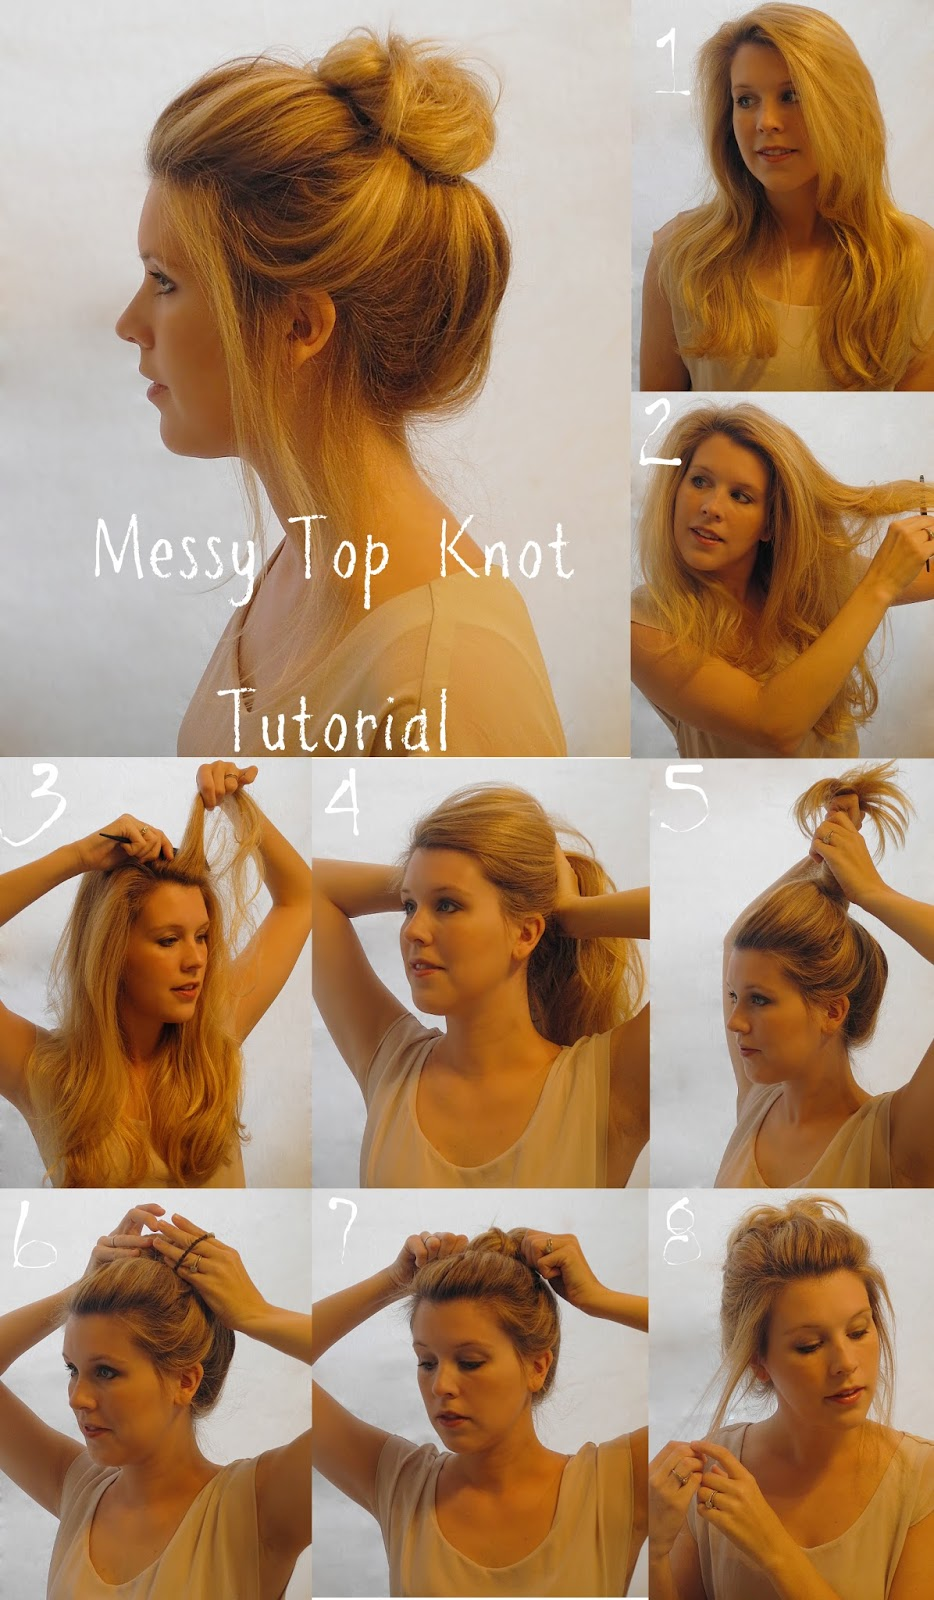 Remarkable Top 25 Messy Hair Bun Tutorials Perfect For Those Lazy Mornings Hairstyle Inspiration Daily Dogsangcom